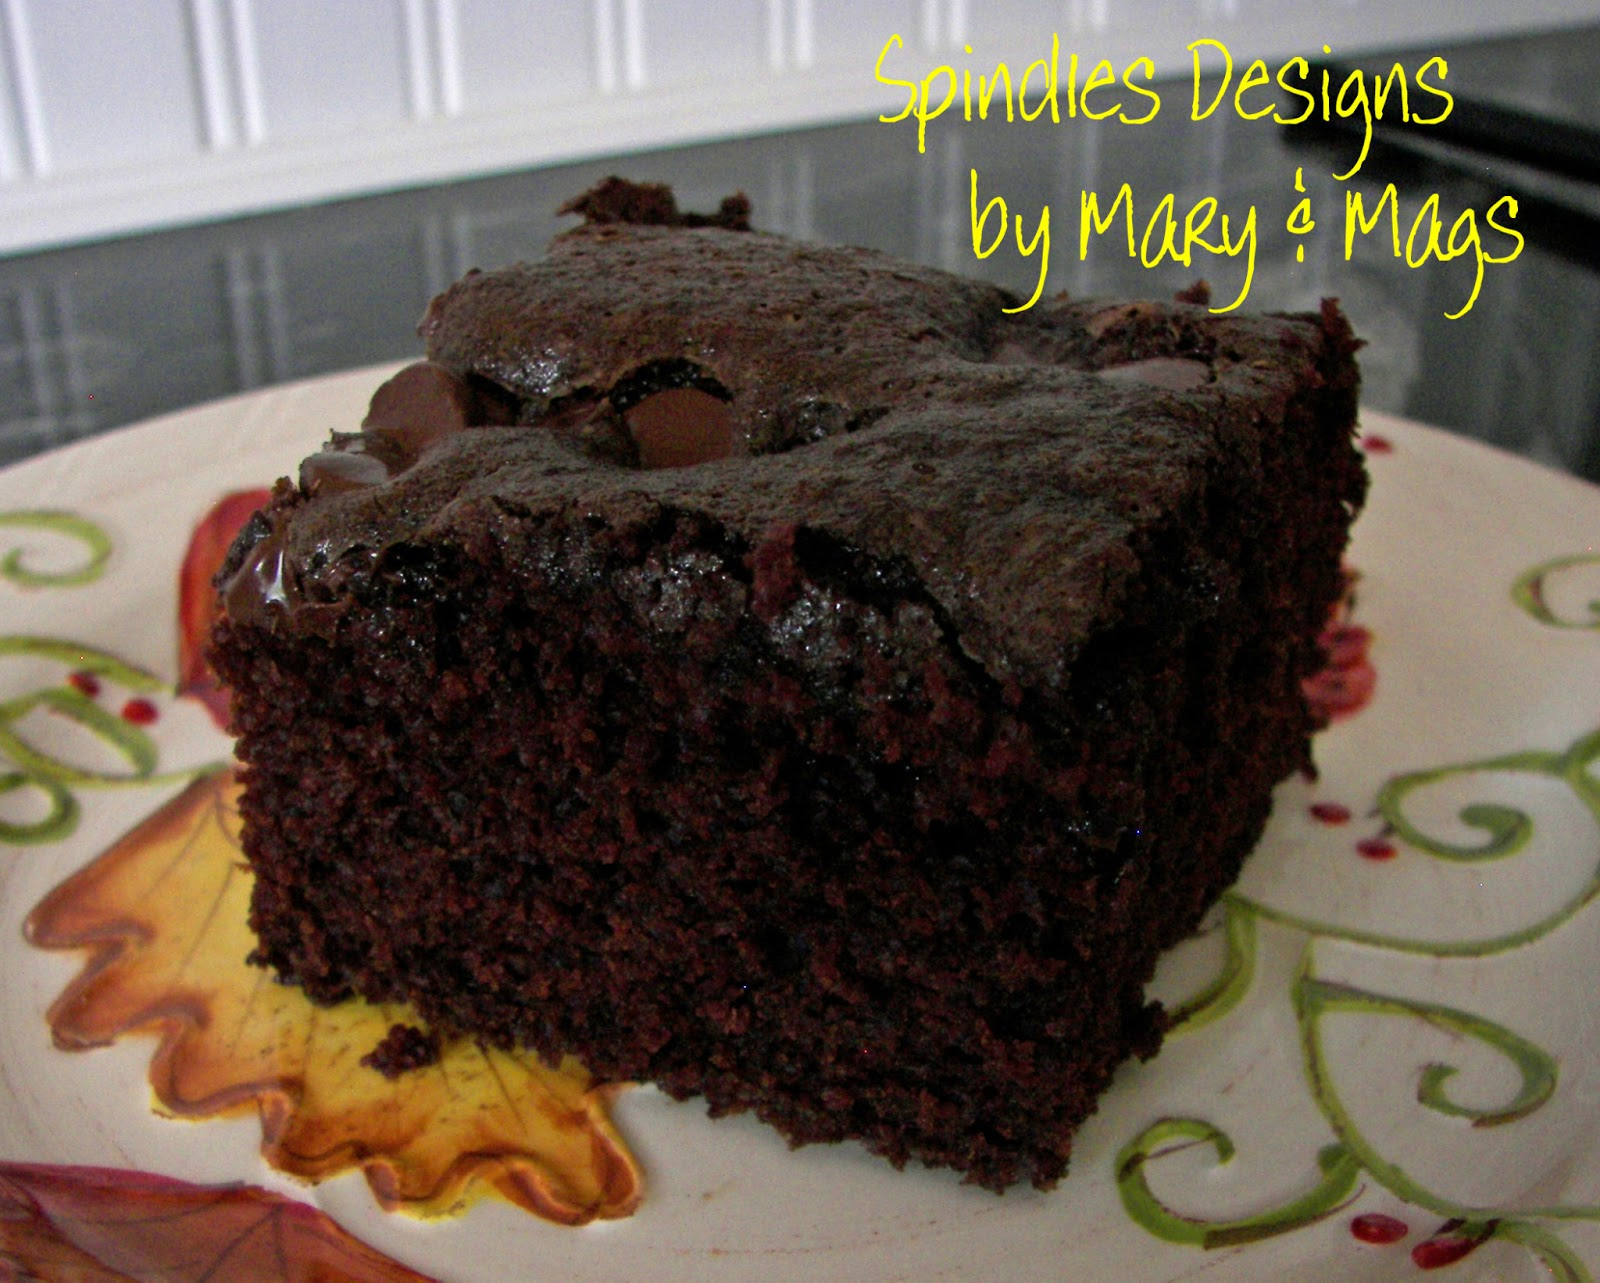 Chocolate Snack Cake - Spindles Designs by Mary and Mags